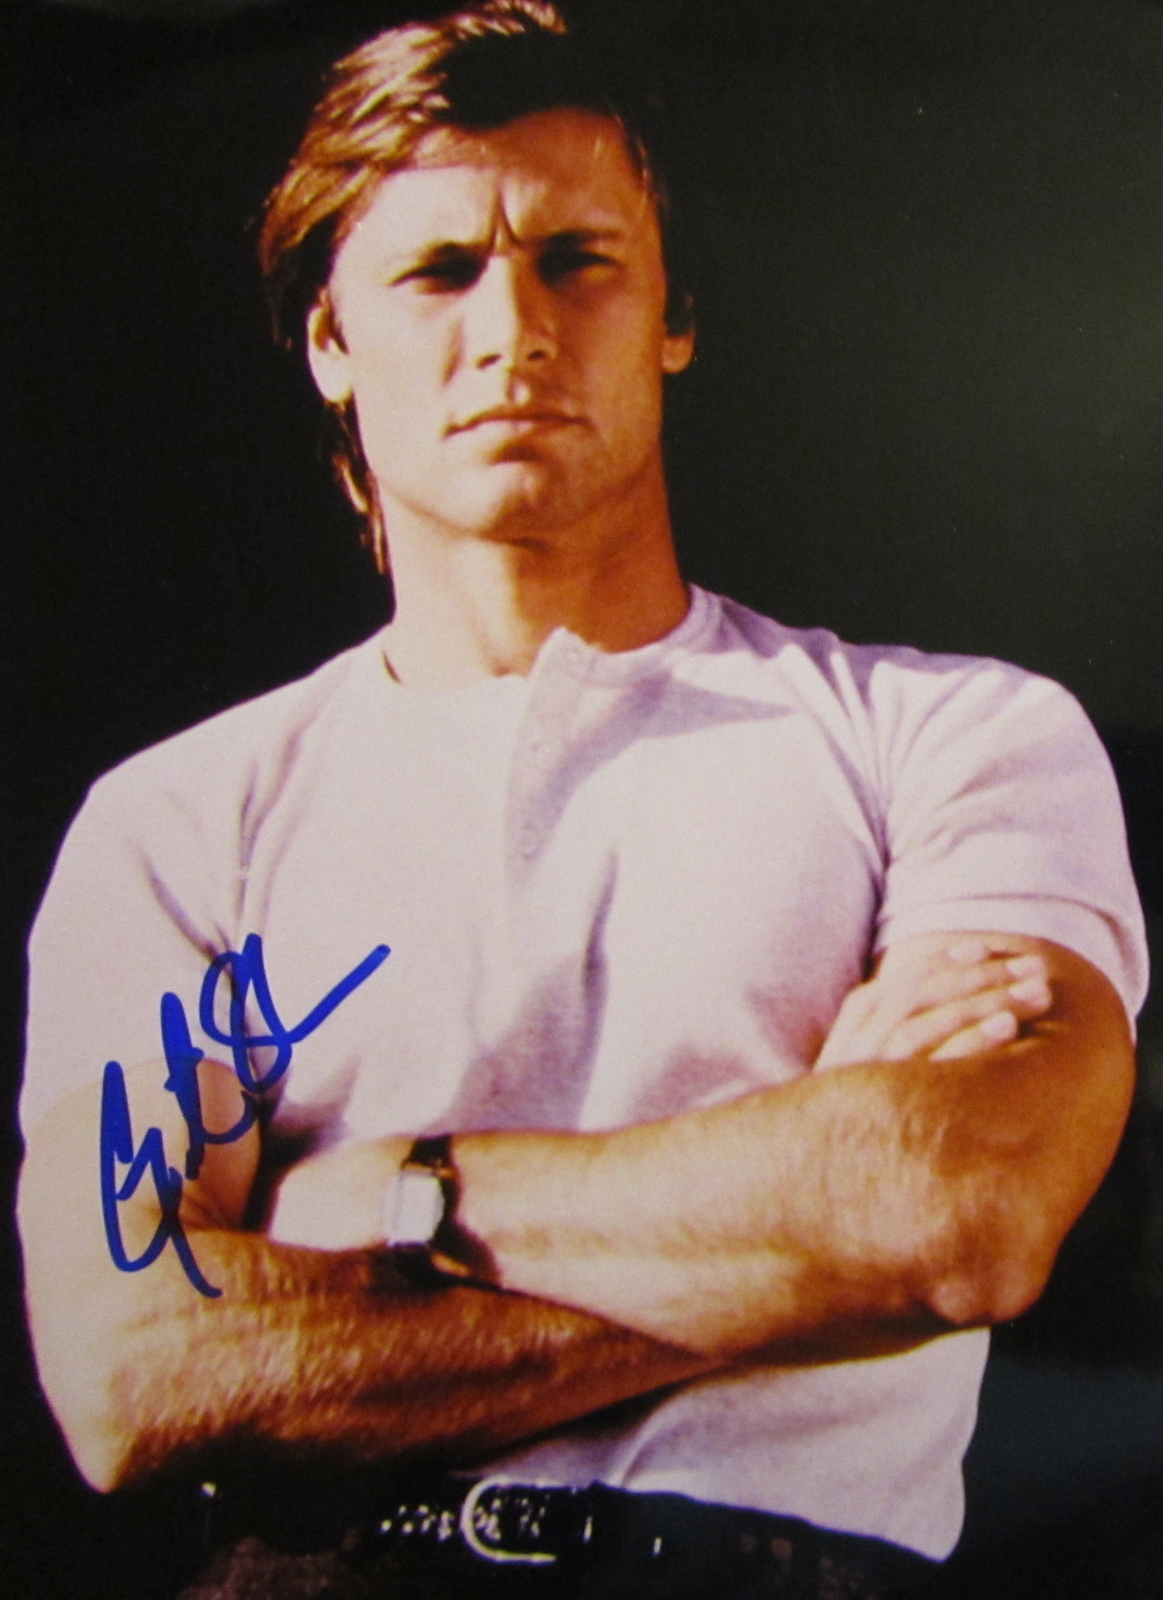 GRANT SHOW SIGNED AUTOGRAPHED PHOTO W/COA MELROSE PLACE GREY'S ANATOMY - $14.00